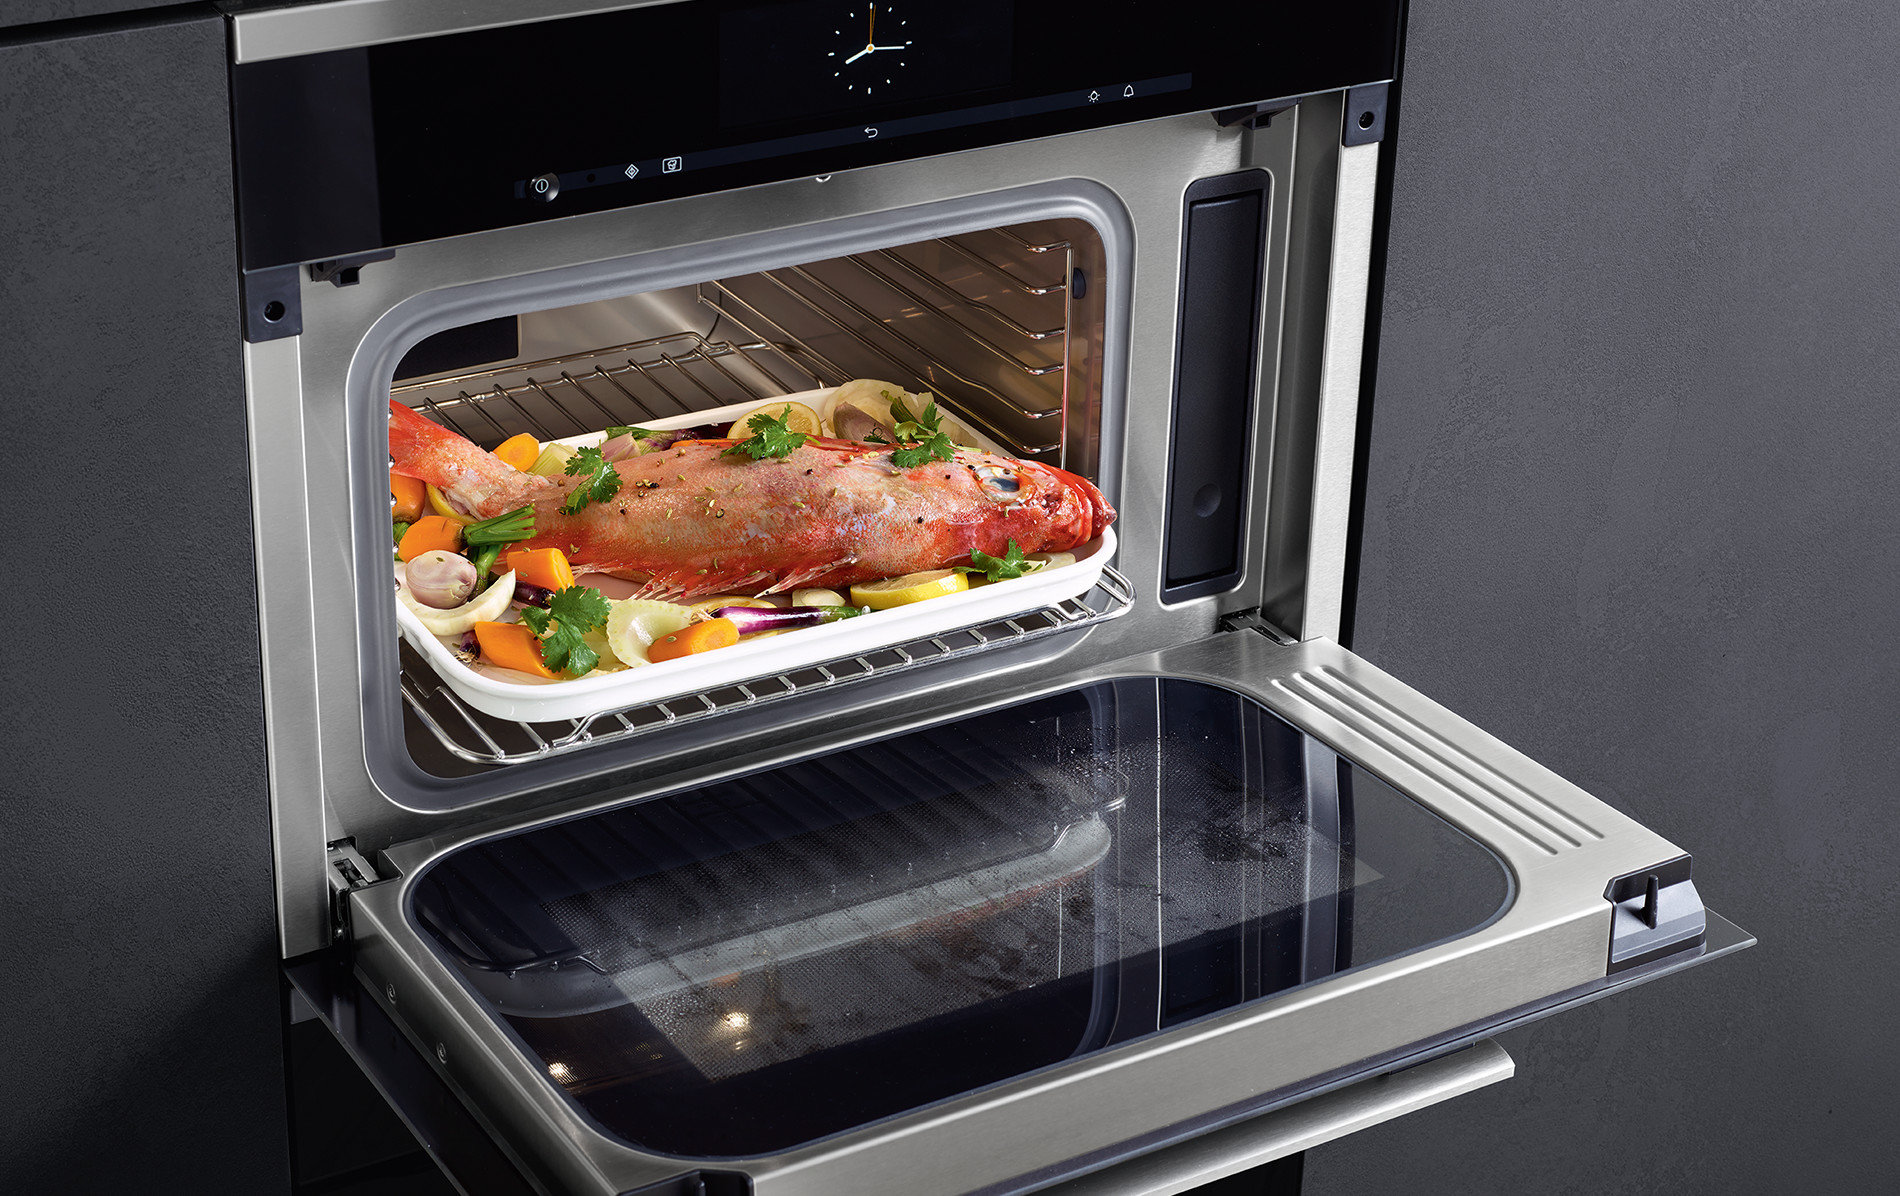 miele dgm steam oven with microwave